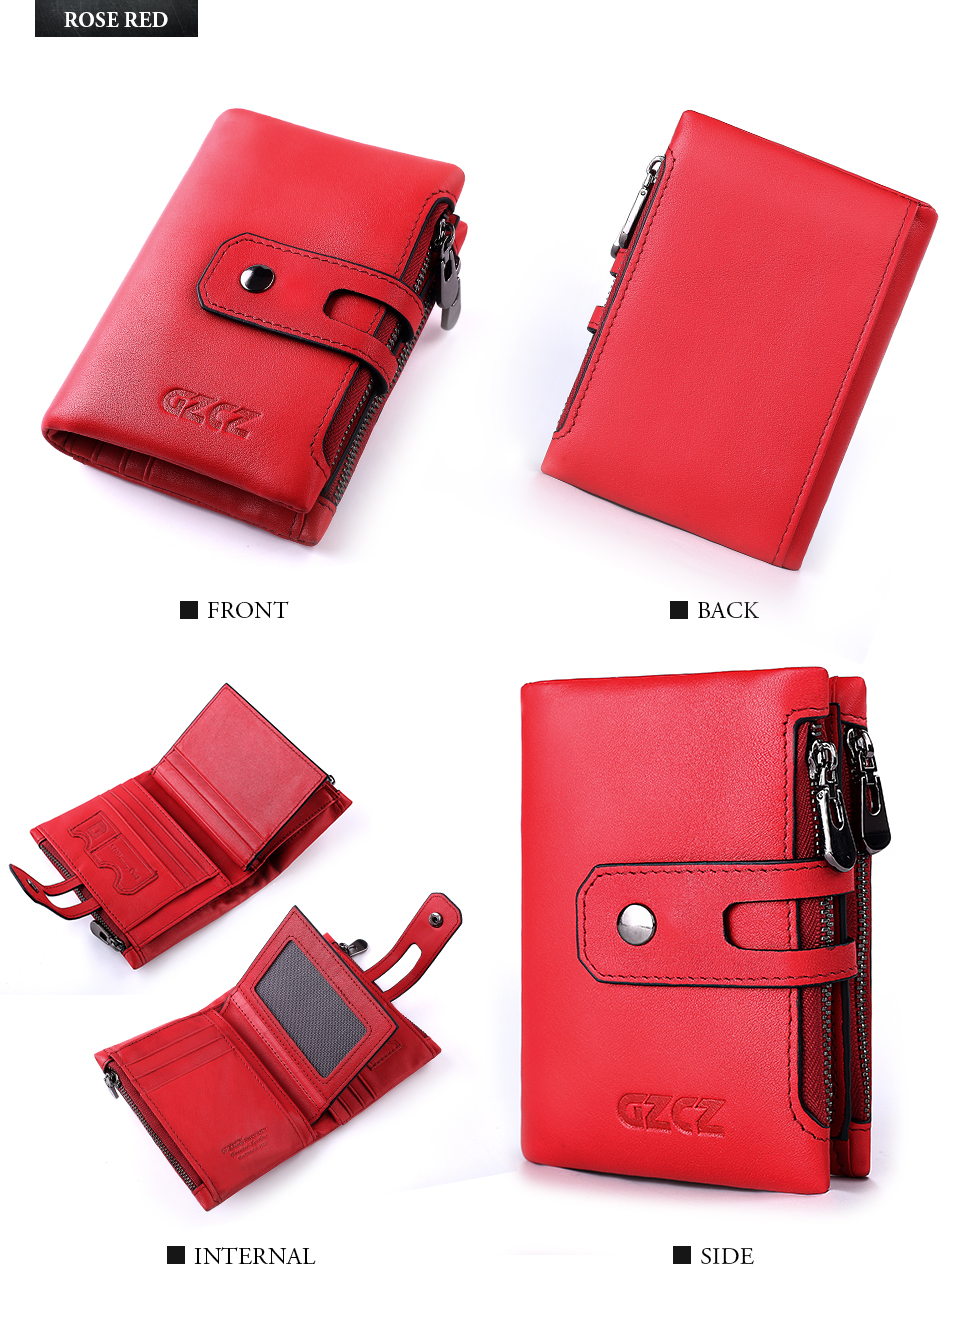 __-___GZCZ_GZ0040-new_woman-wallet-red(Red)-M_16